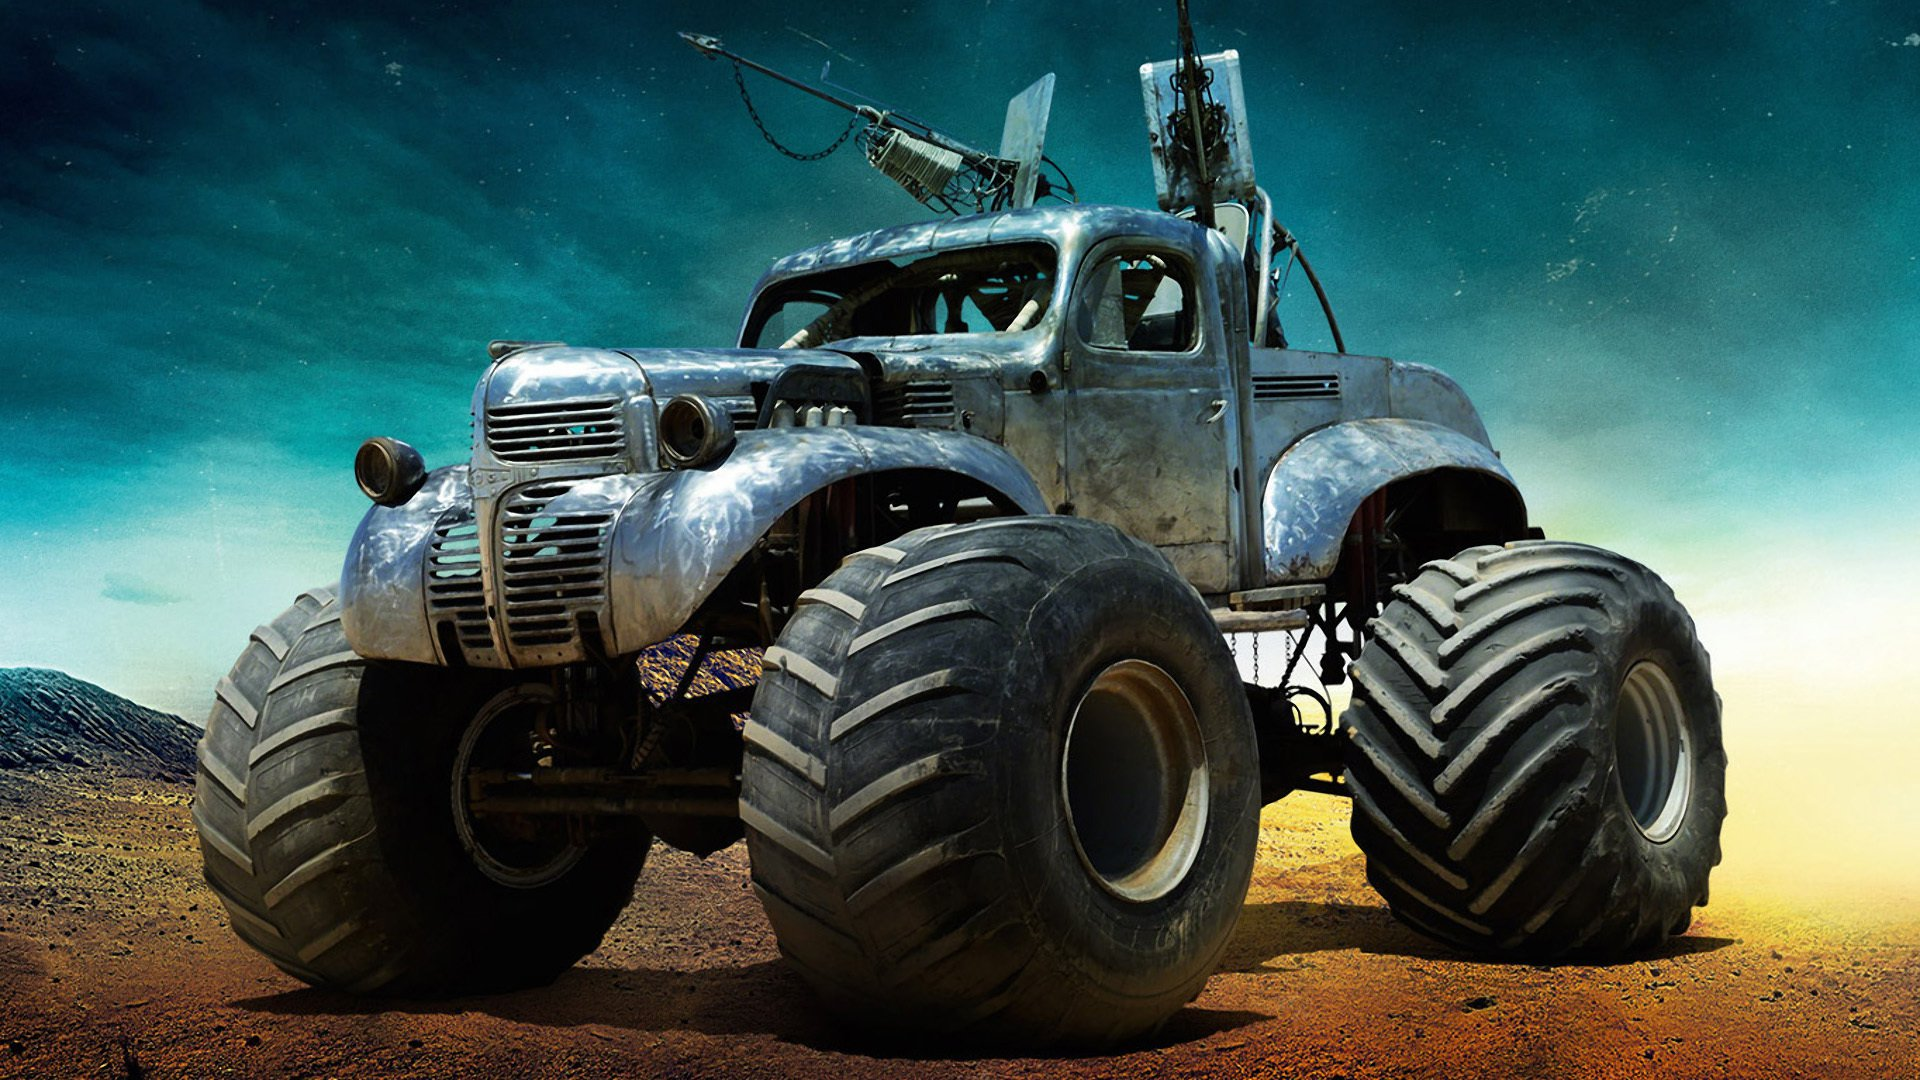 Mad Max Fury Road Movie Car Jeep HD Wallpaper   Stylish HD Wallpapers 1920x1080